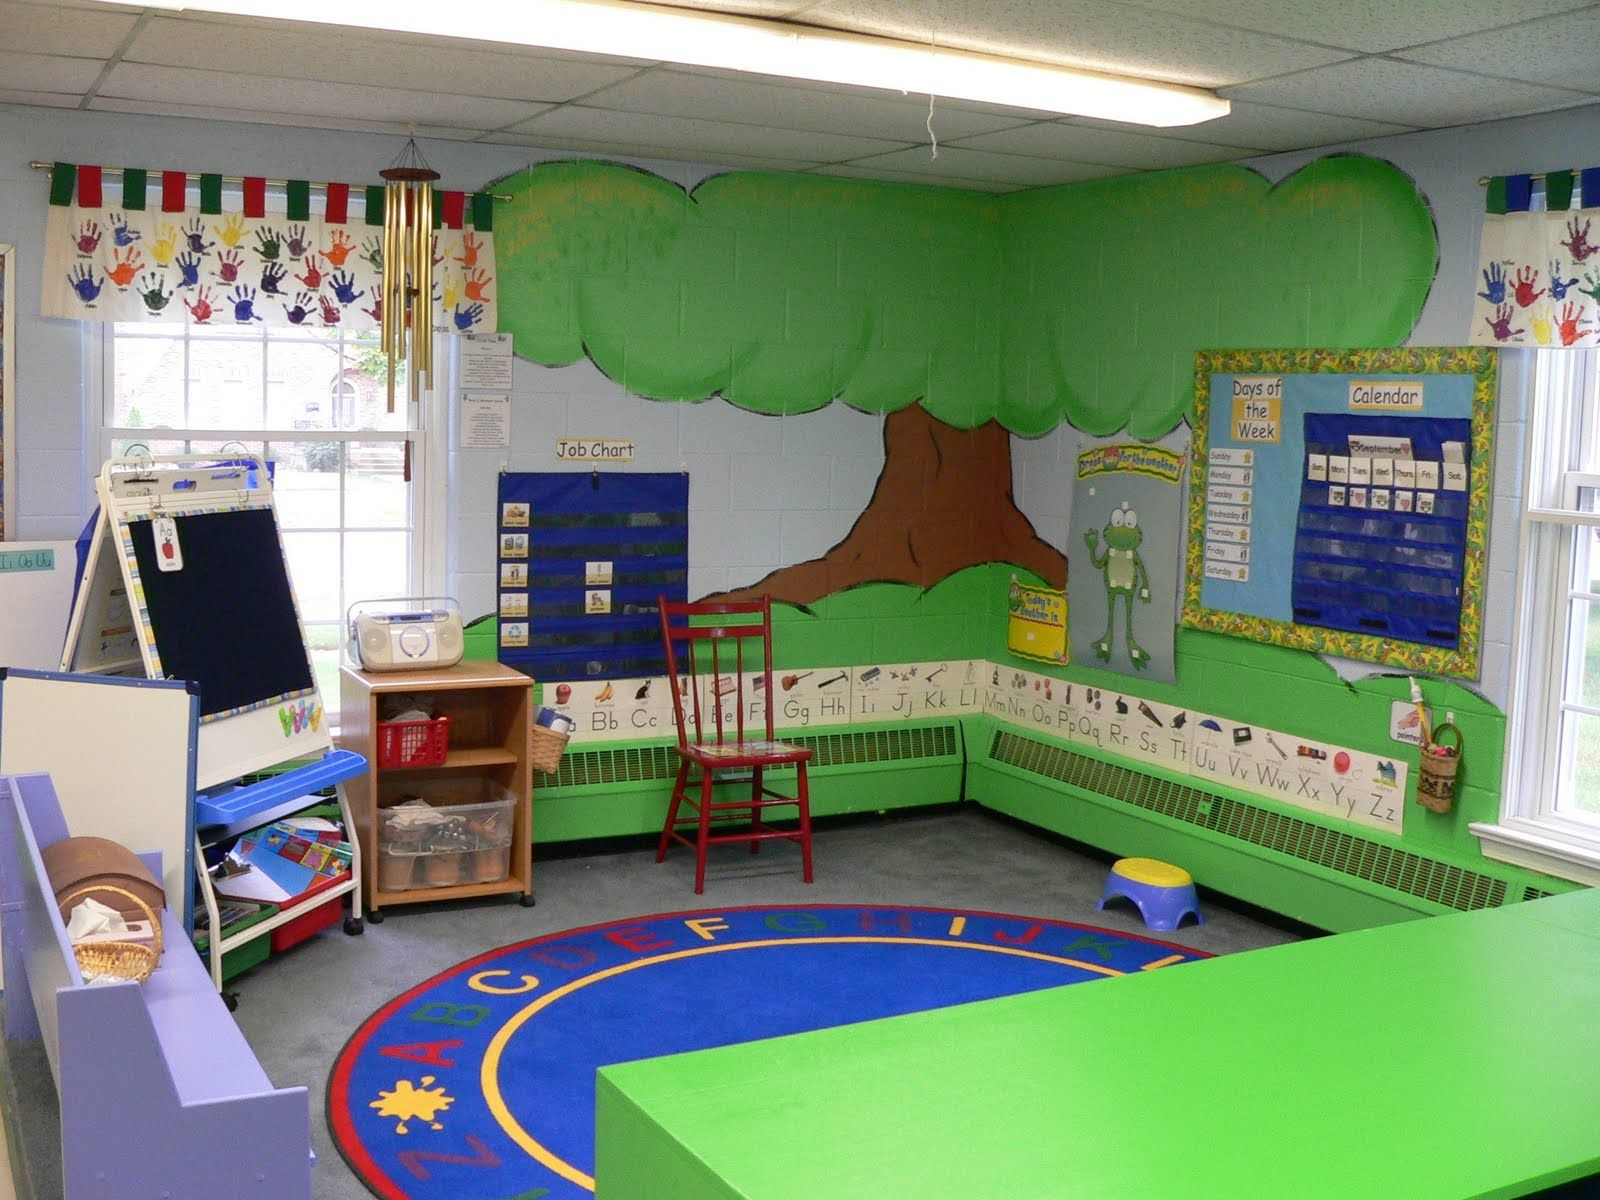 Classroom Design Ideas calming classroom concept simple colours and space to move around calming classrooms to manage stress and mindfulness pinterest classroom 1000 Images About Preschool Classroom Layout Design Ideas On Pinterest Preschool Classroom Layout Classroom Layout And Preschool Classroom